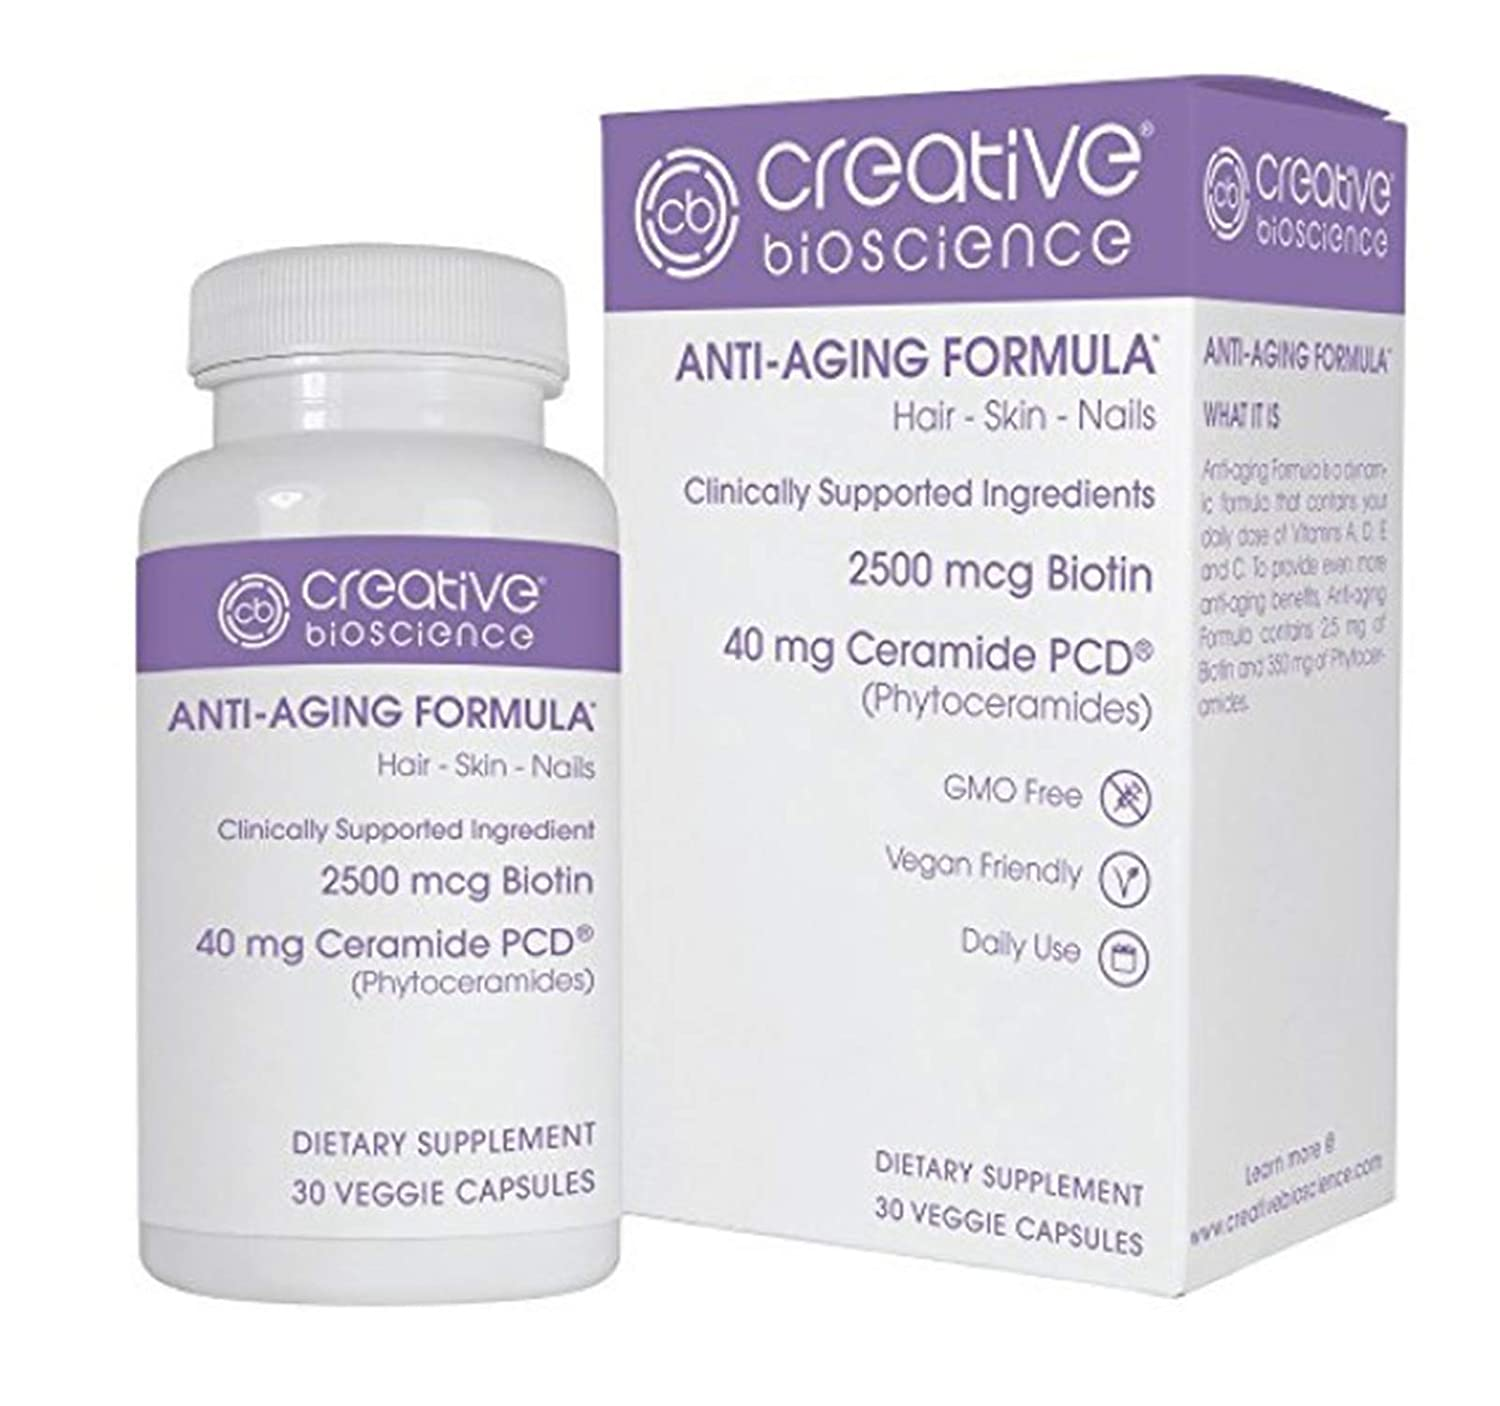 Anti-Aging Formula - Hair, Skin & Nails - Clinically Supported Ingredients (2500mcg Biotin, 40mg Ceramide PCD), GMO-Free, Vegan Friendly, Daily Use - 30 Veggie Capsules, Creative Bioscience, USA Made